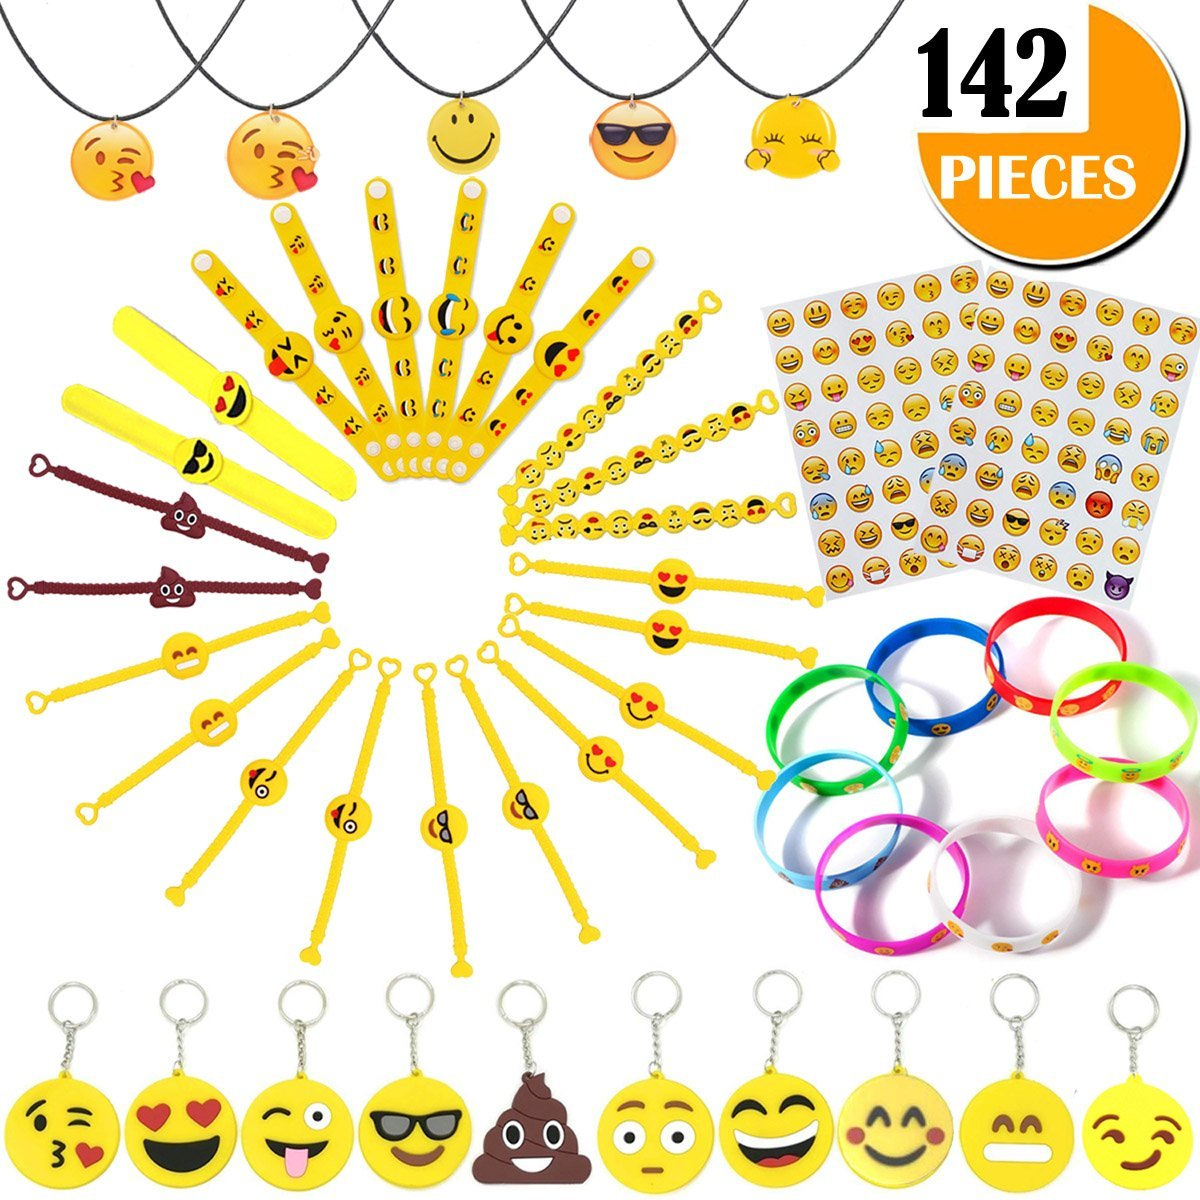 Emoji Party Supplies Kids' Dress-up Toys Bulk Set - 142 Pieces Emoticon Rubber Wristbands Bracelets Assorted Kit - Birthday Party Favor Decoration Mega Pack - Children Prizes Novelty Crafts Gift by Youwith Joy (Image #1)